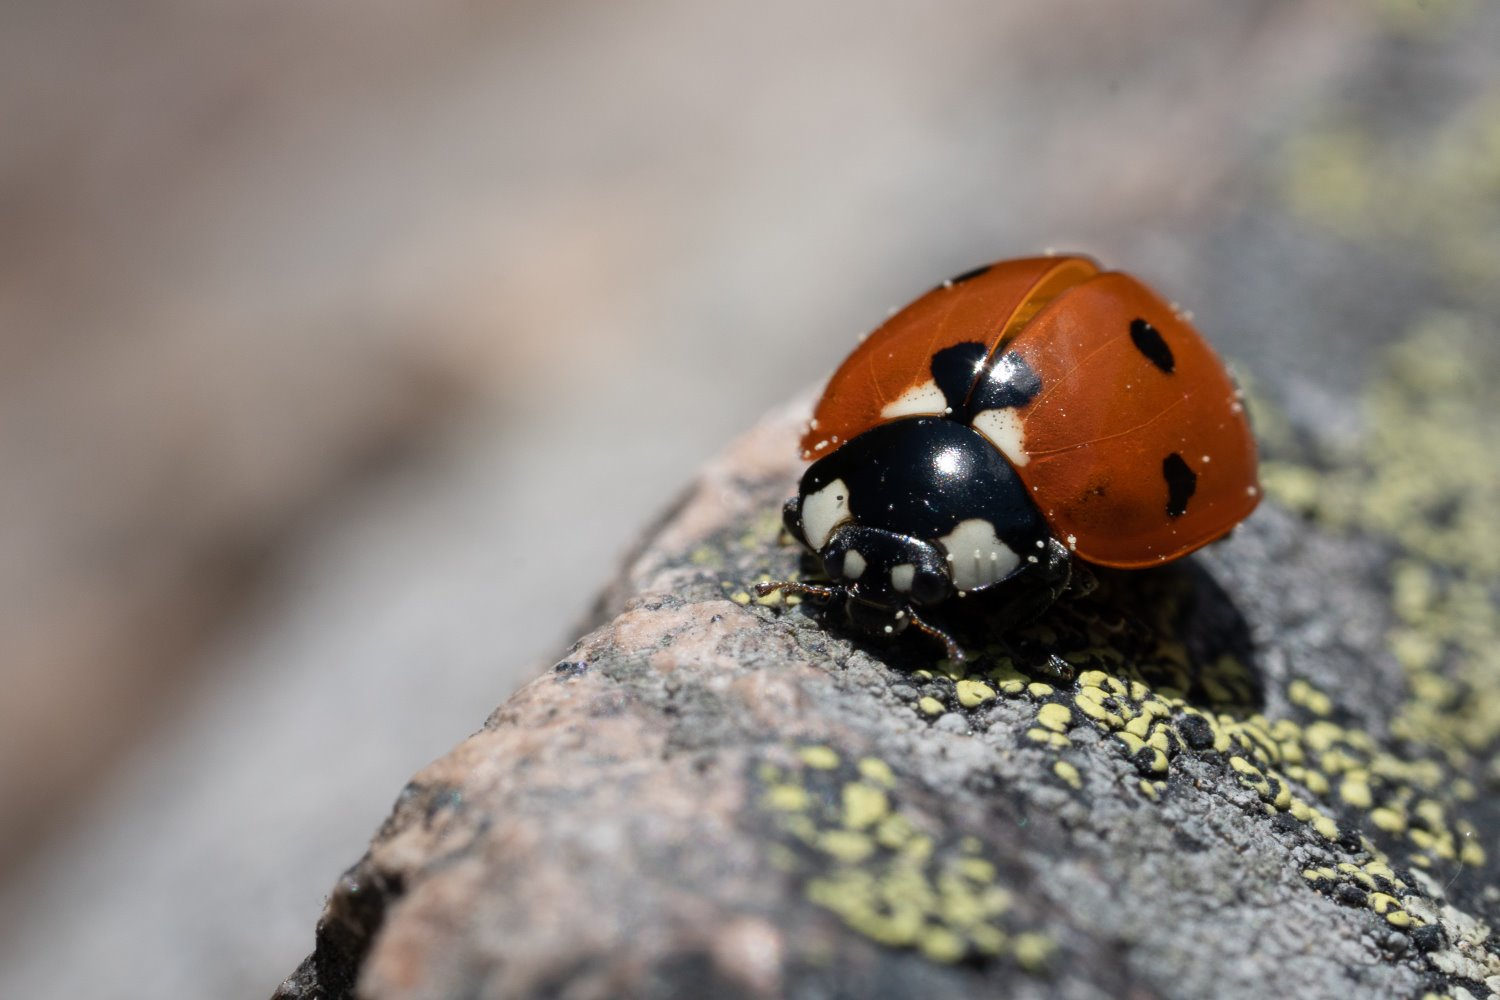 macro photography tips for point and shoot cameras